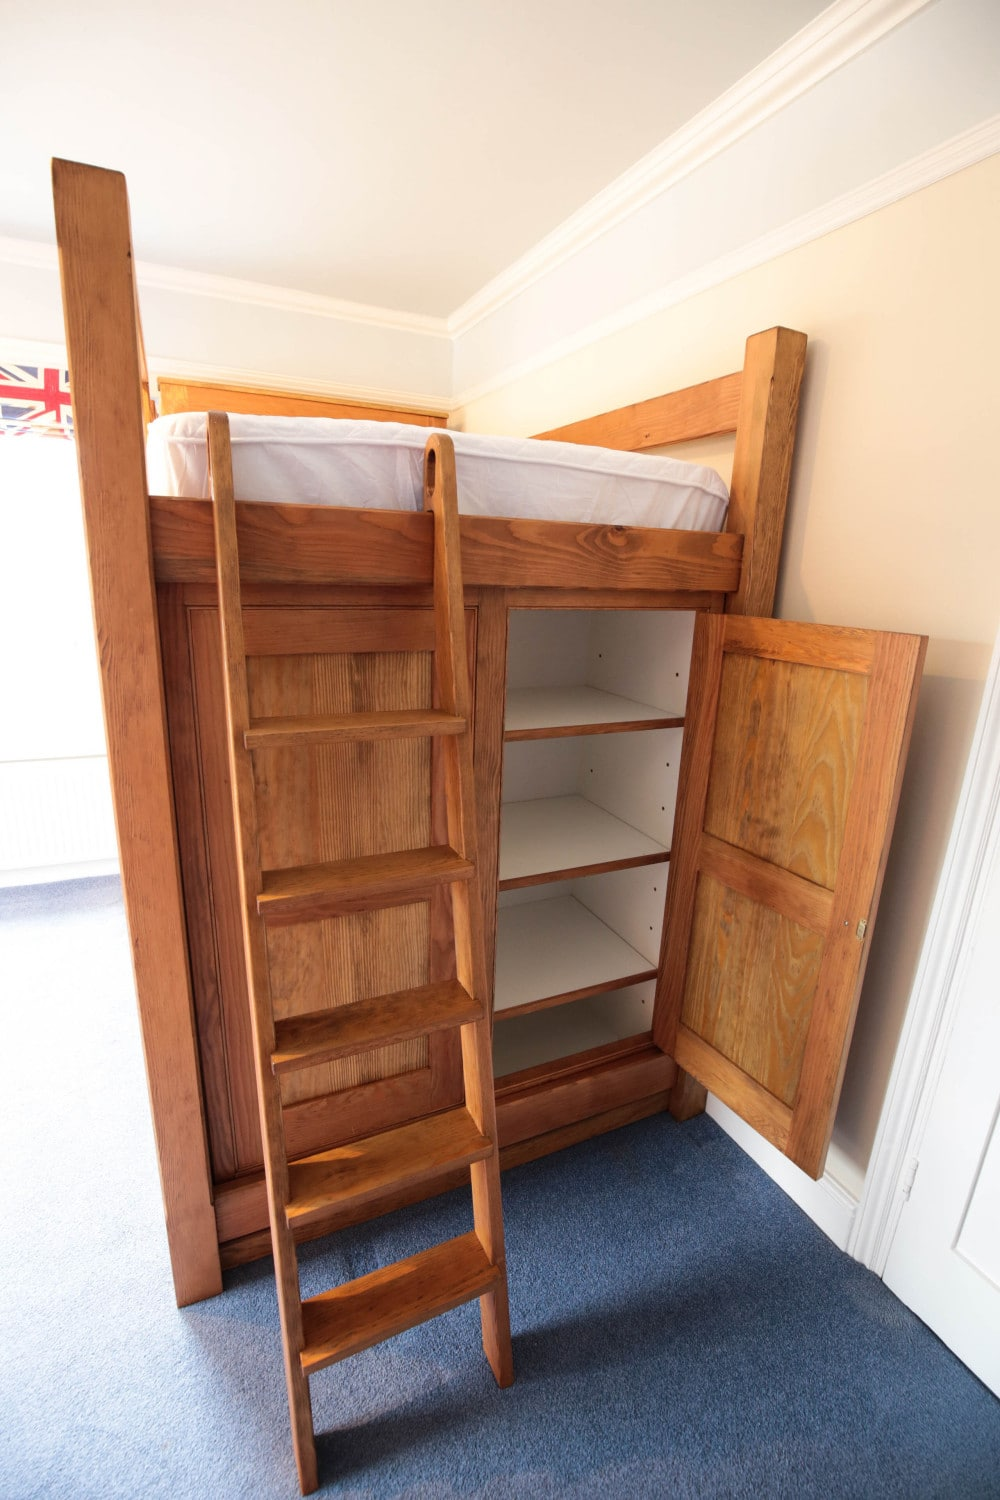 Cabin Bed With Storage Area Waterhall Joinery Ltd Herts